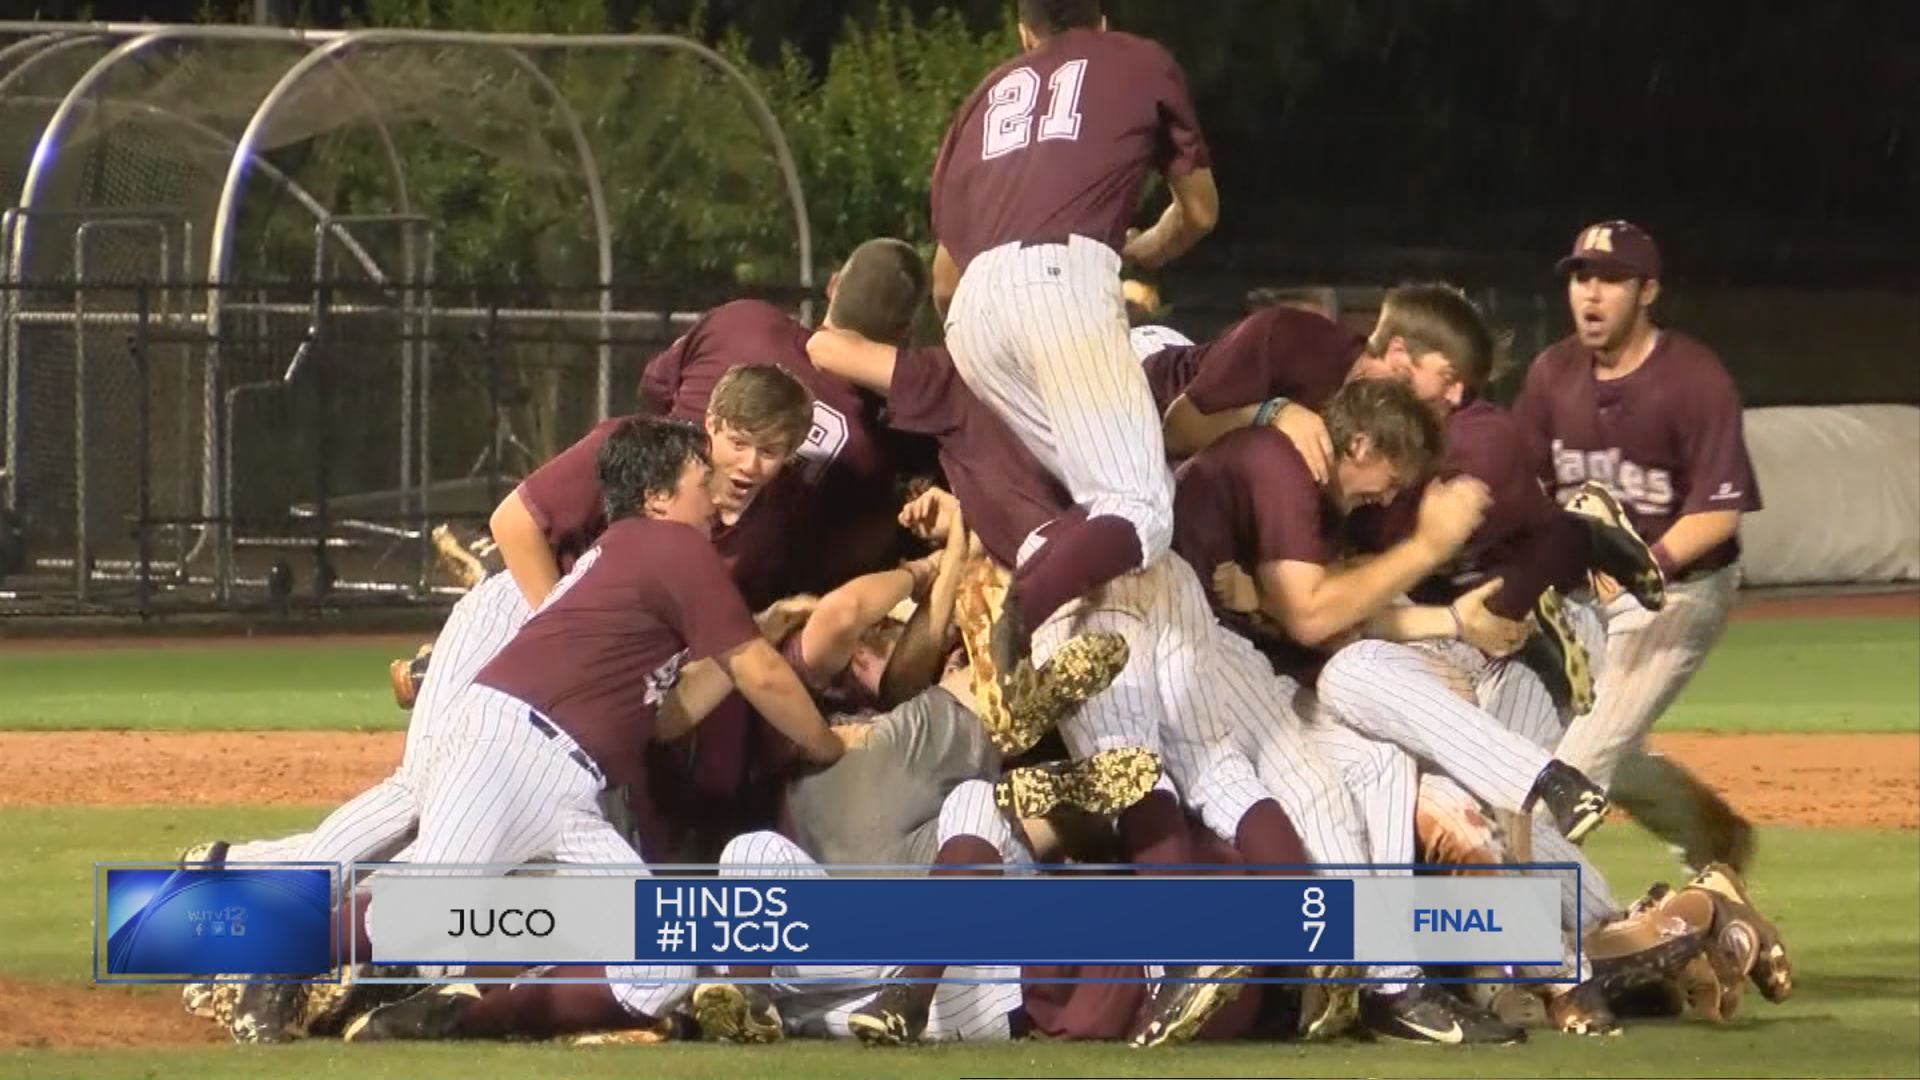 HINDS WORLD SERIES_330798